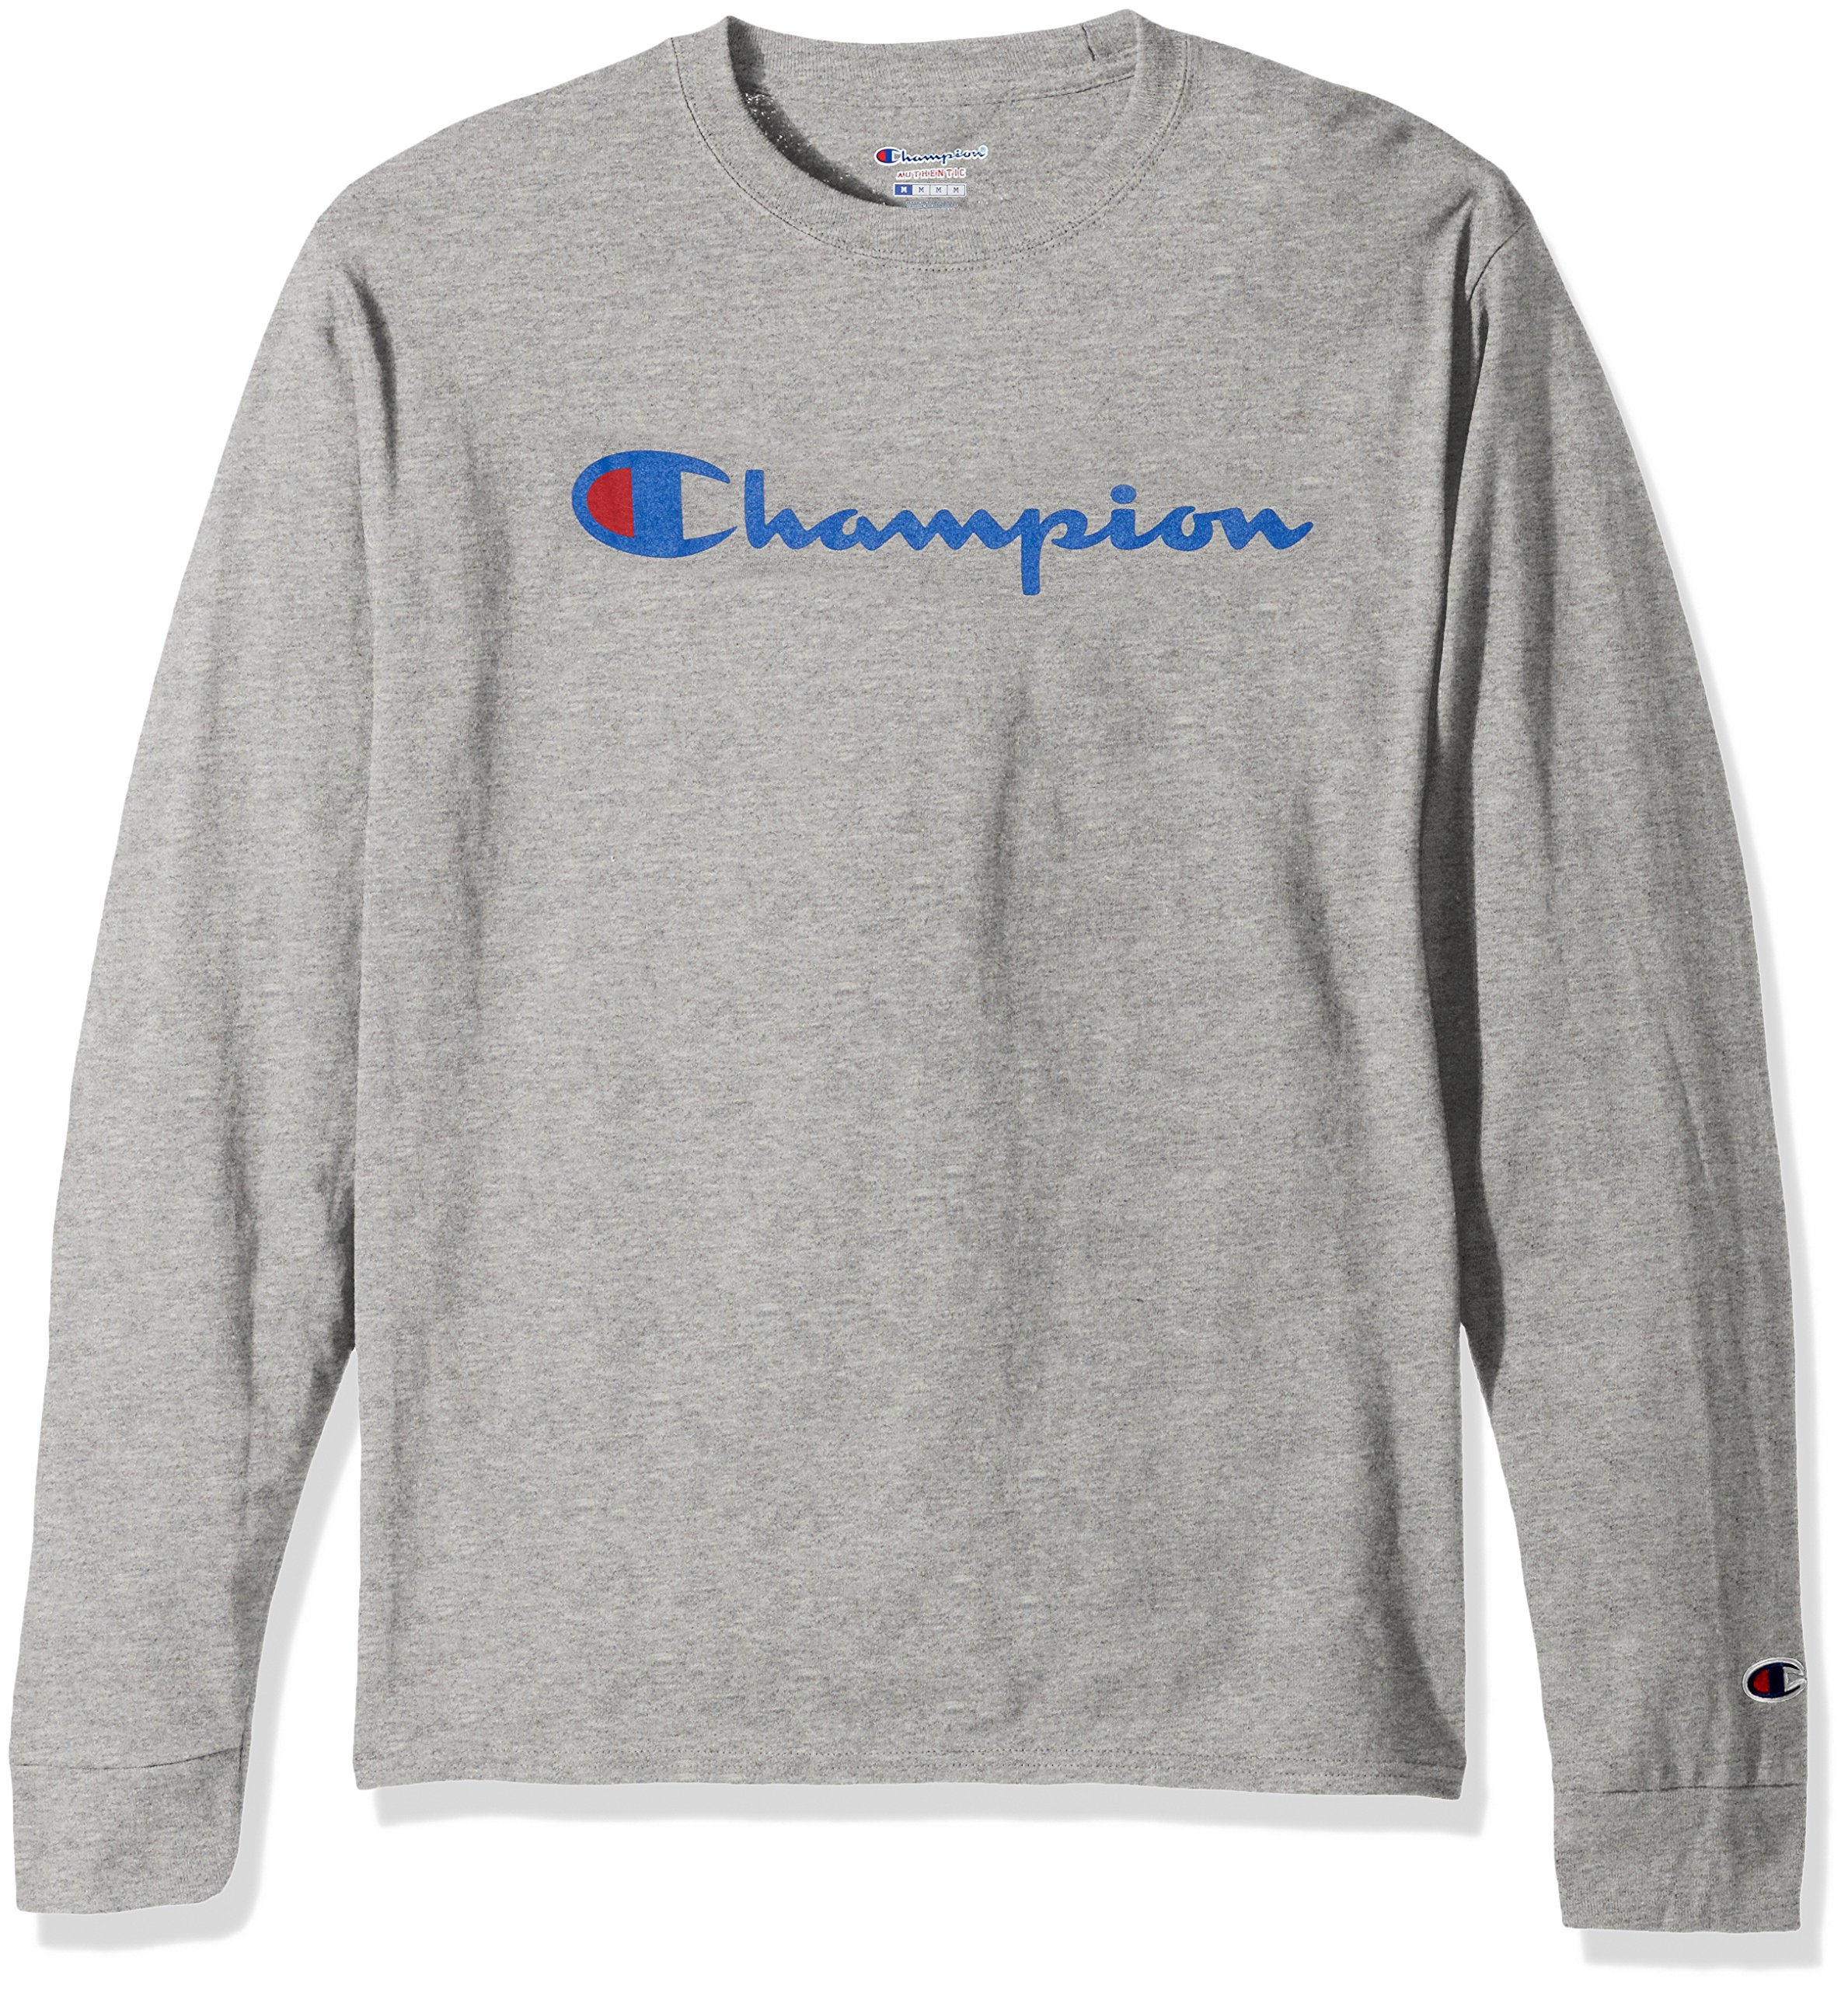 Champion LIFE Men's Cotton Long Sleeve Tee, Oxford Gray/Patriotic Script, Large